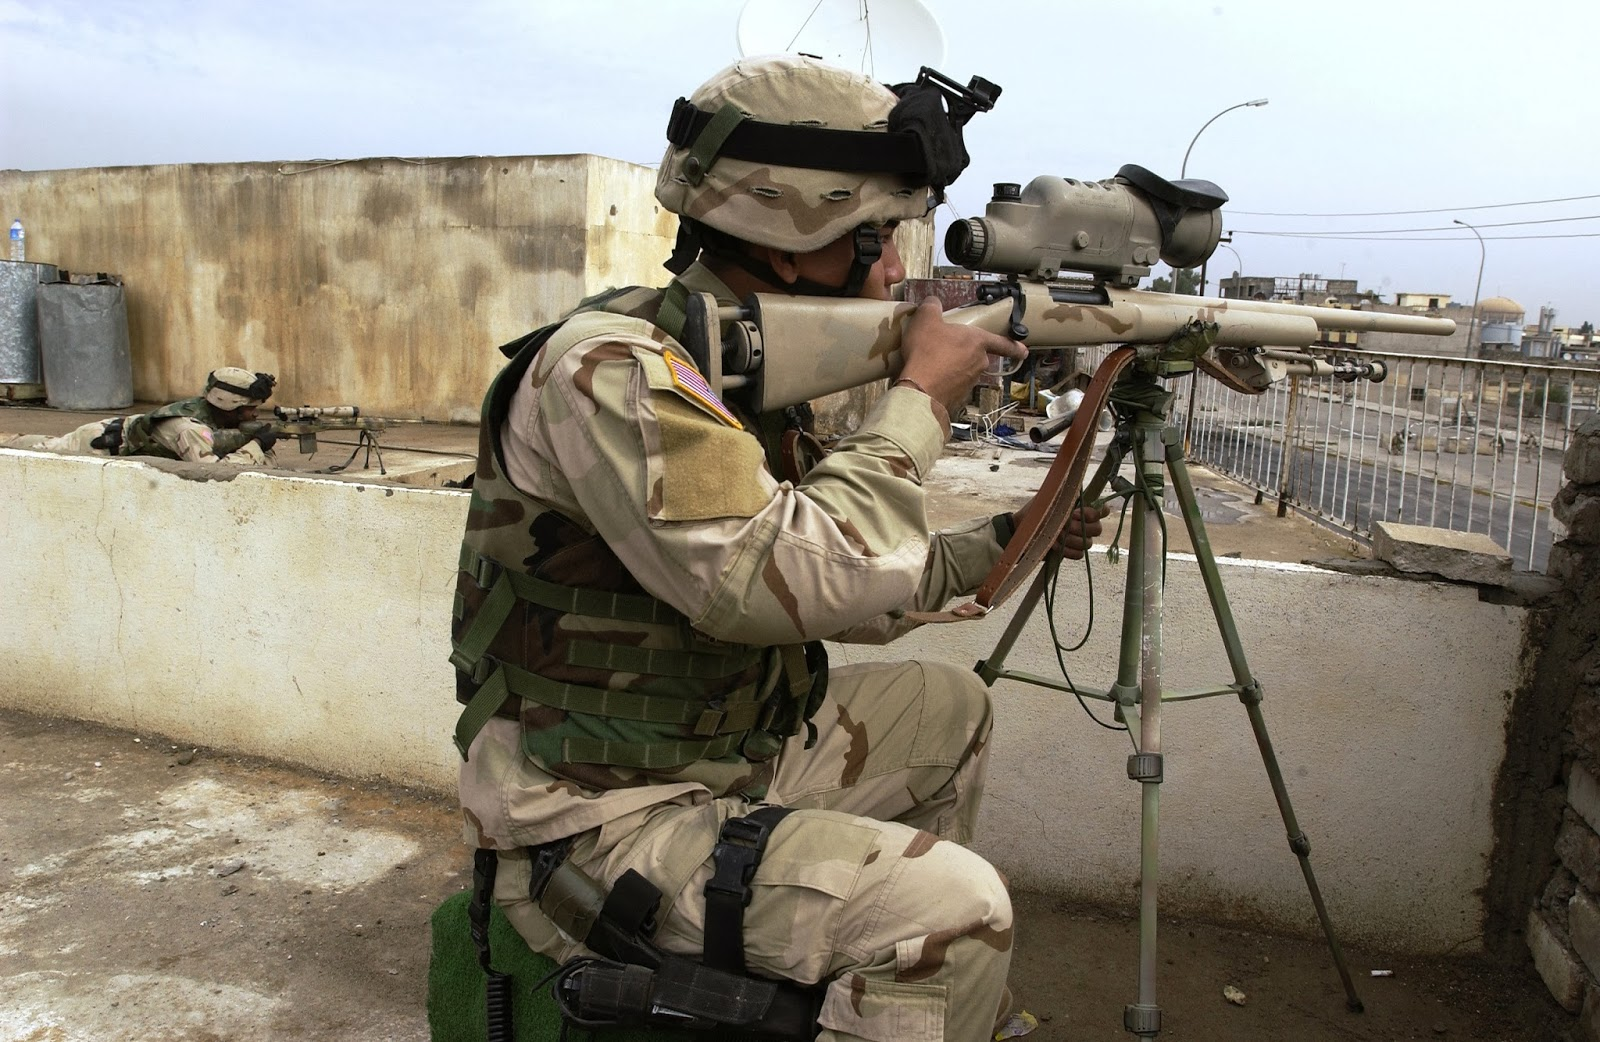 Us+Army+Sniper+Rifle ... 62 × 51mm Suppressed American Sniper Rifle ... M110 Sniper Rifle Suppressed